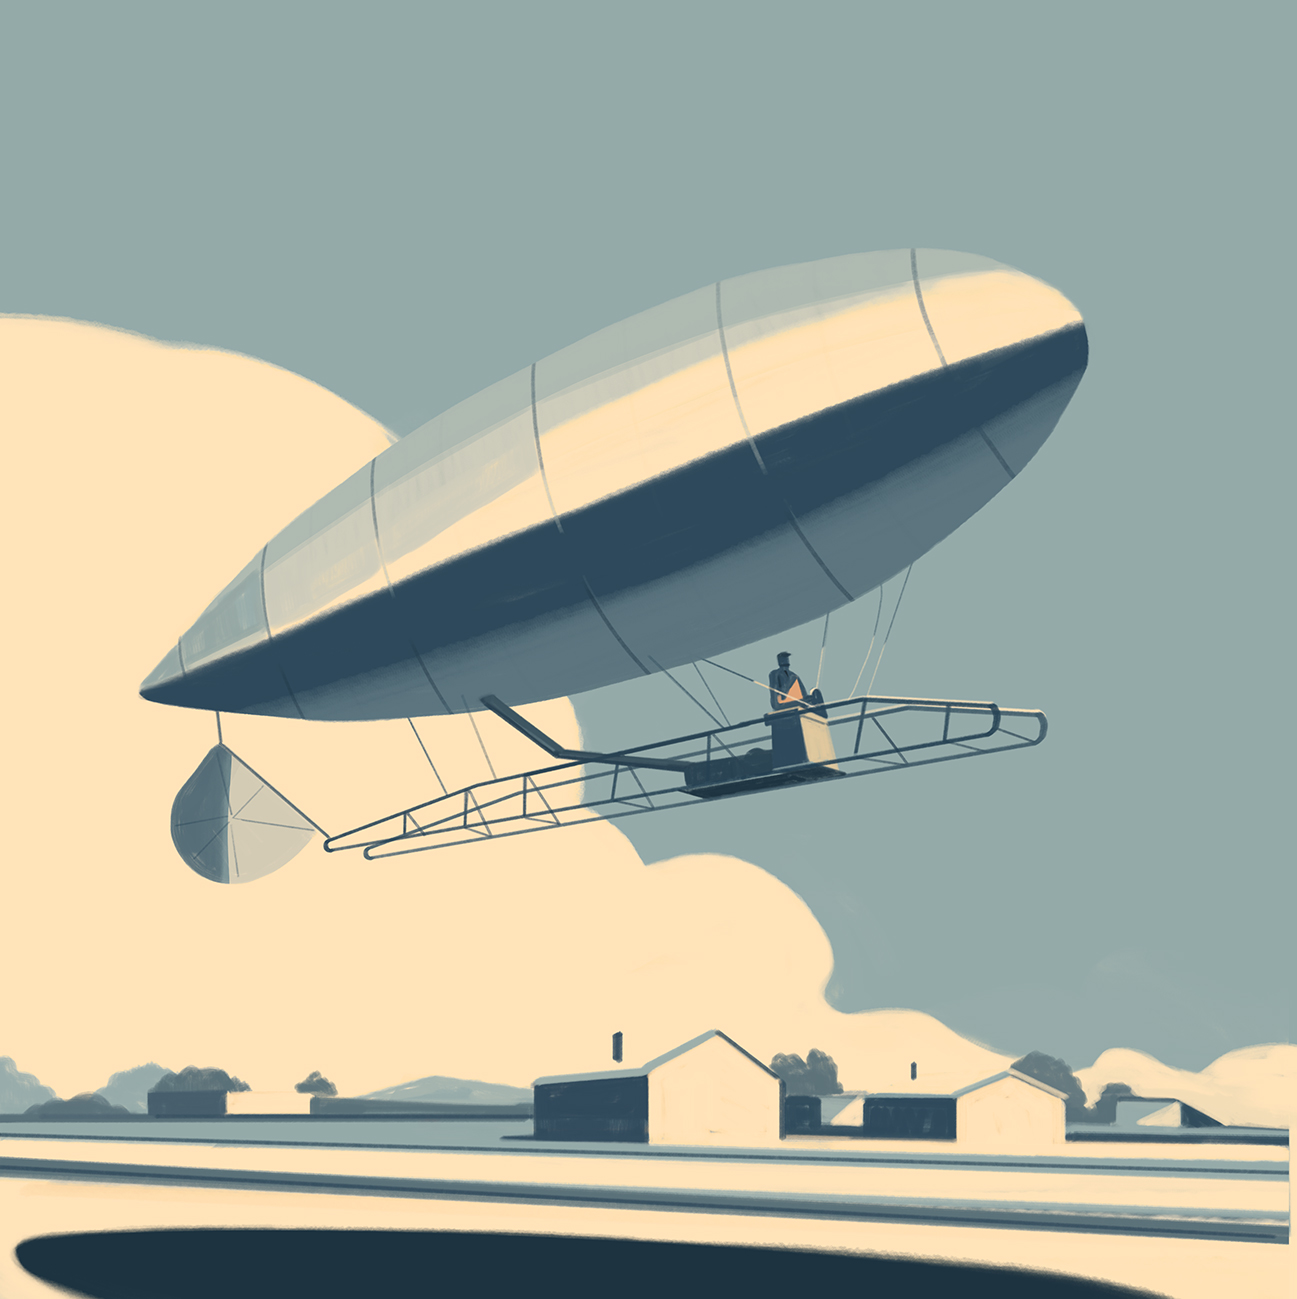 A story written in the clouds, Emiliano Ponzi 2